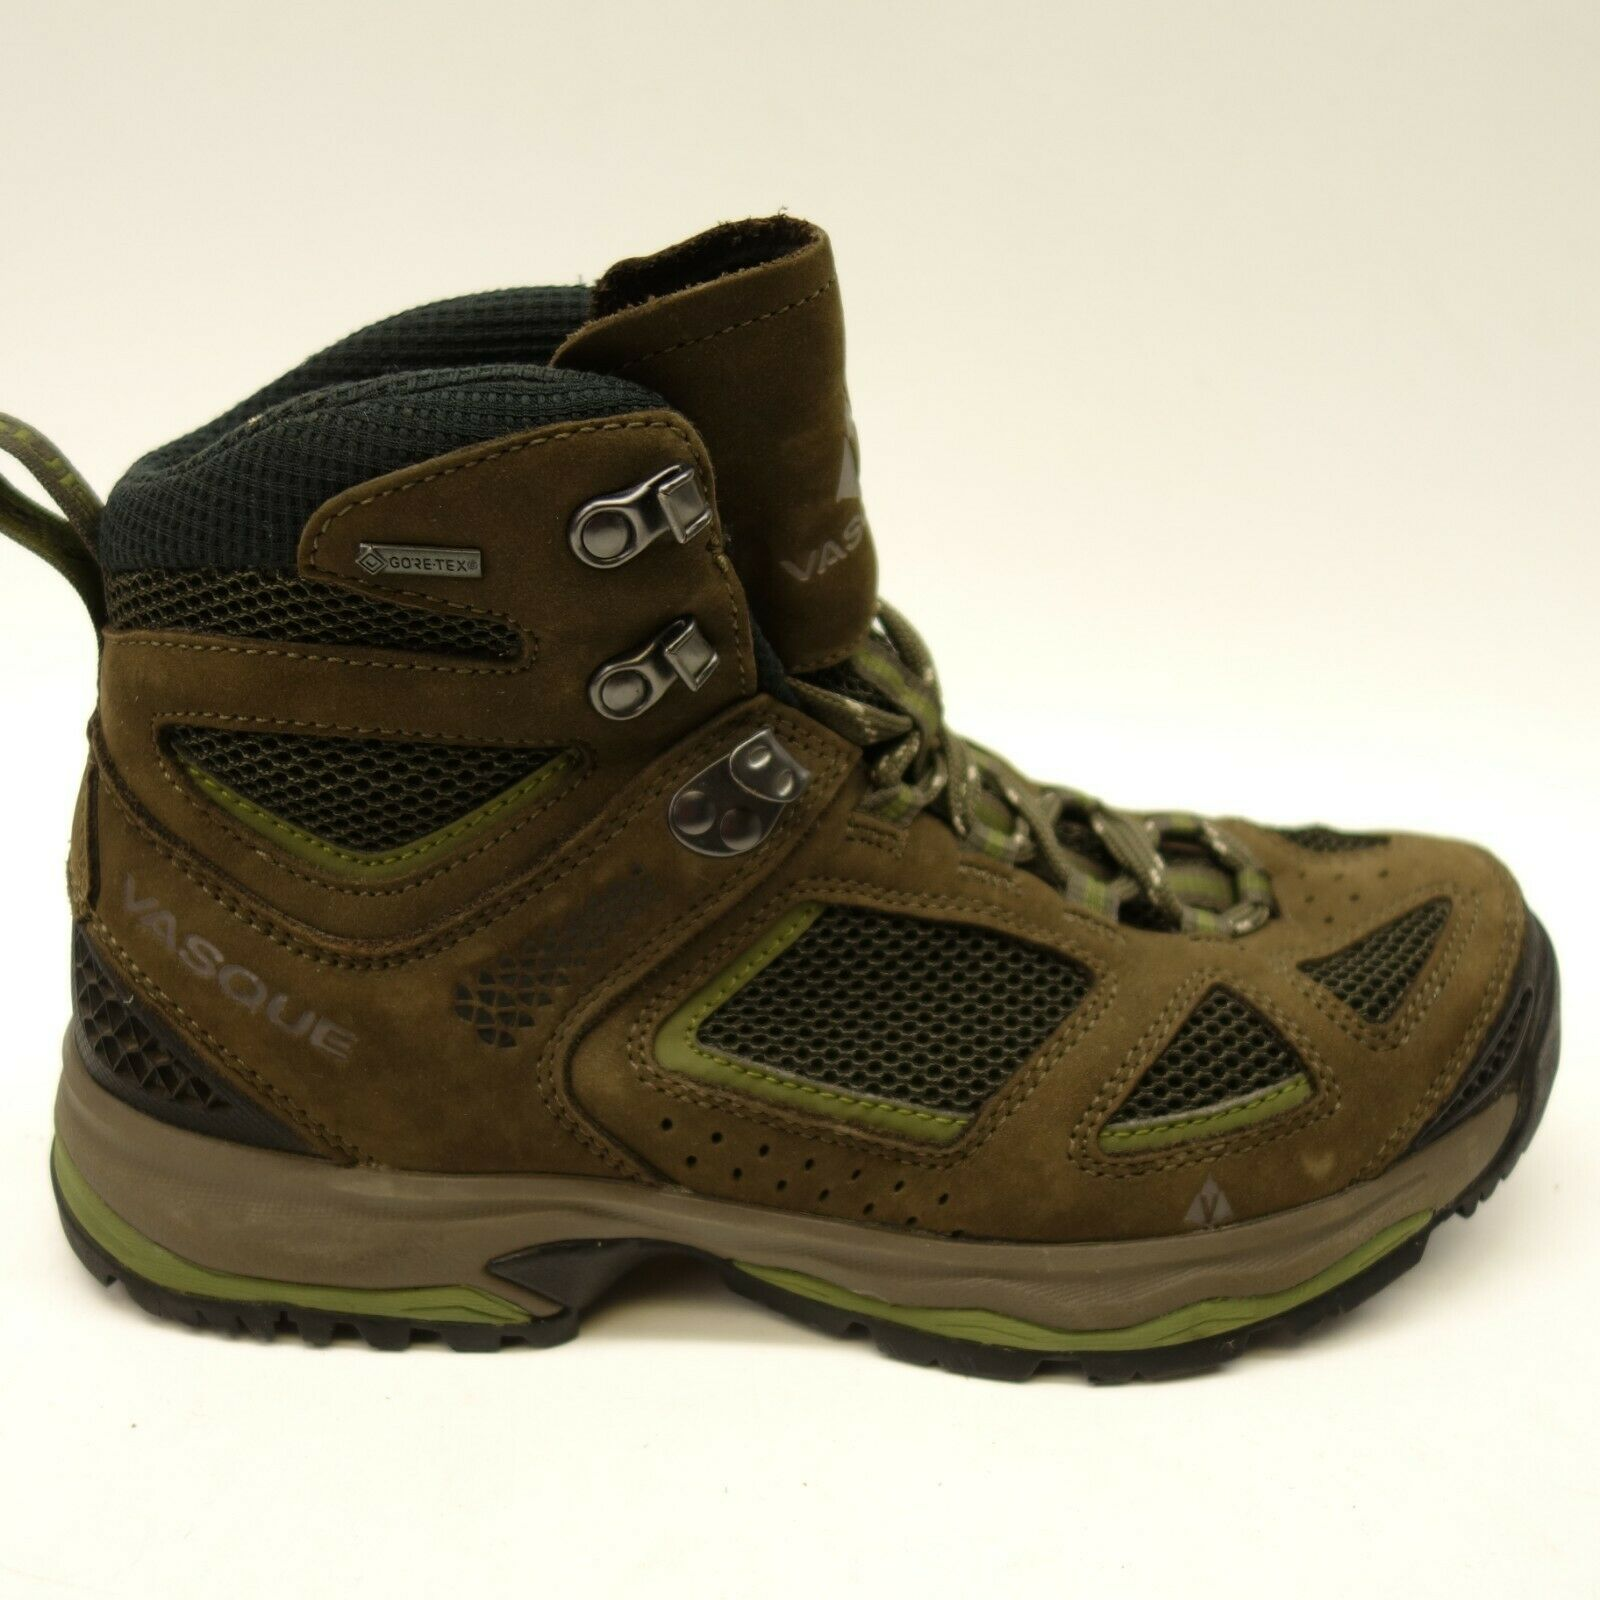 New Vasque Mens Breeze III Mid GTX Waterproof Athletic Hiking Boots Size 7.5